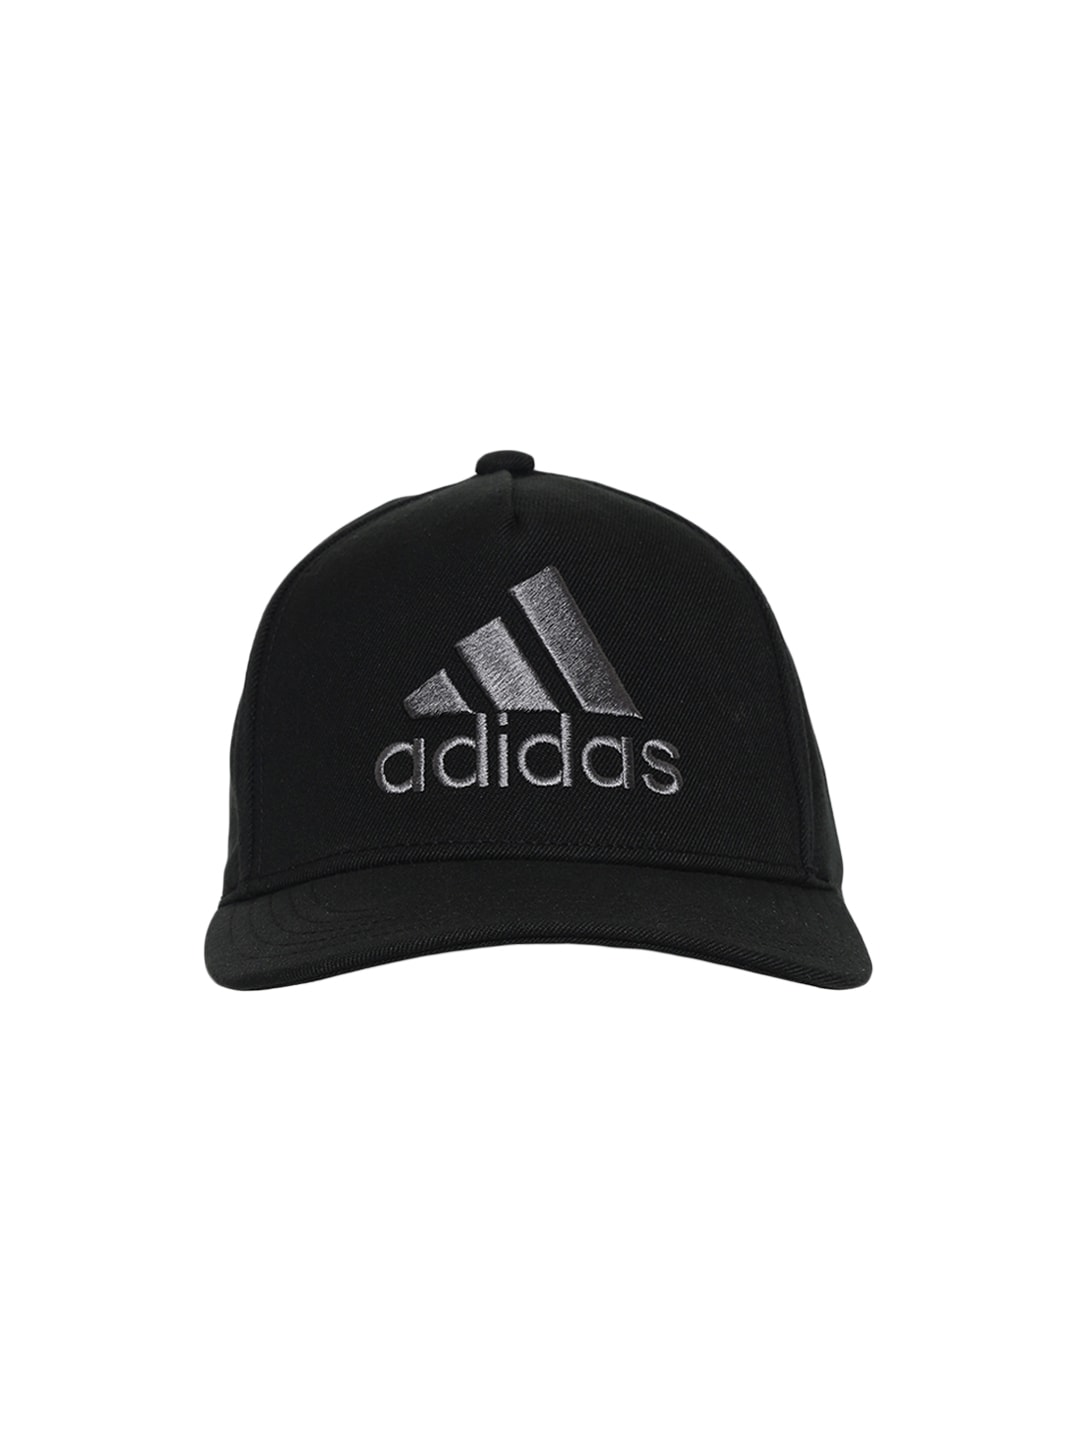 ebd66399c Adidas Cap - Buy Adidas Caps for Women   Girls Online